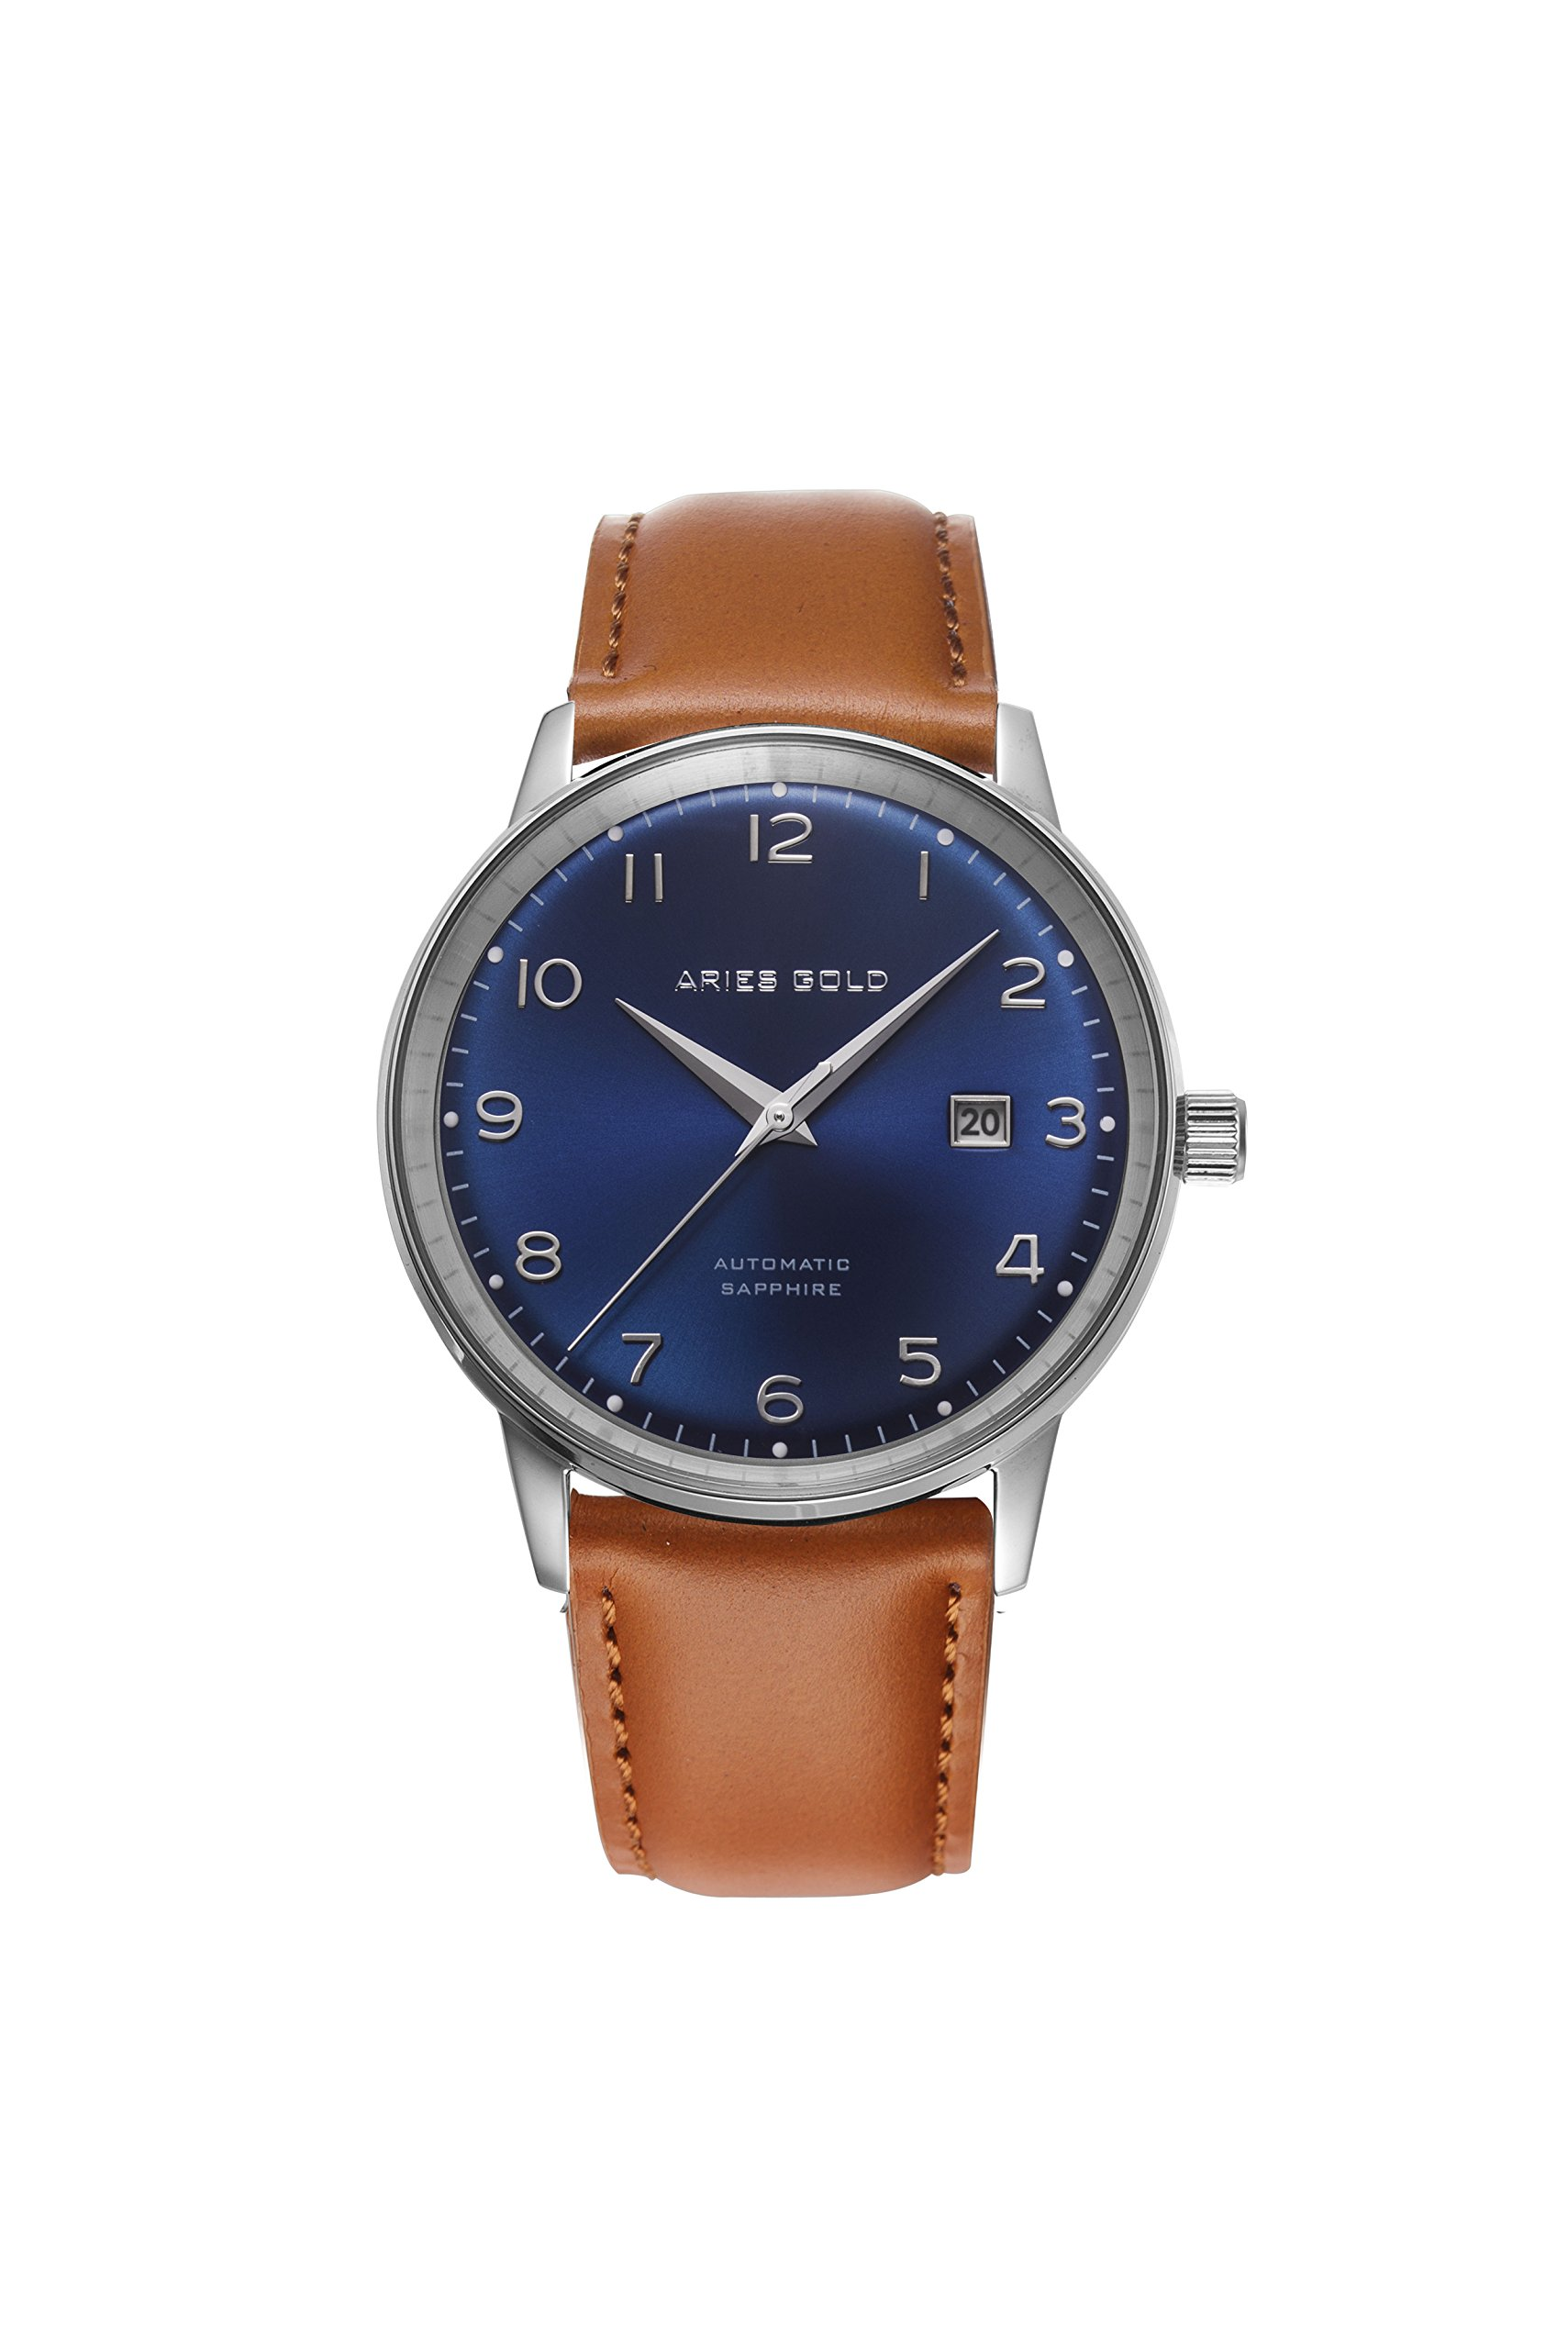 Aries Gold│ODYSSEY│G 9010 S-BU│Men's Wrist Watch│Genuine Leather Strap│Curve Dial│Date Window (Blue) | Valentine's Day Gift For Him